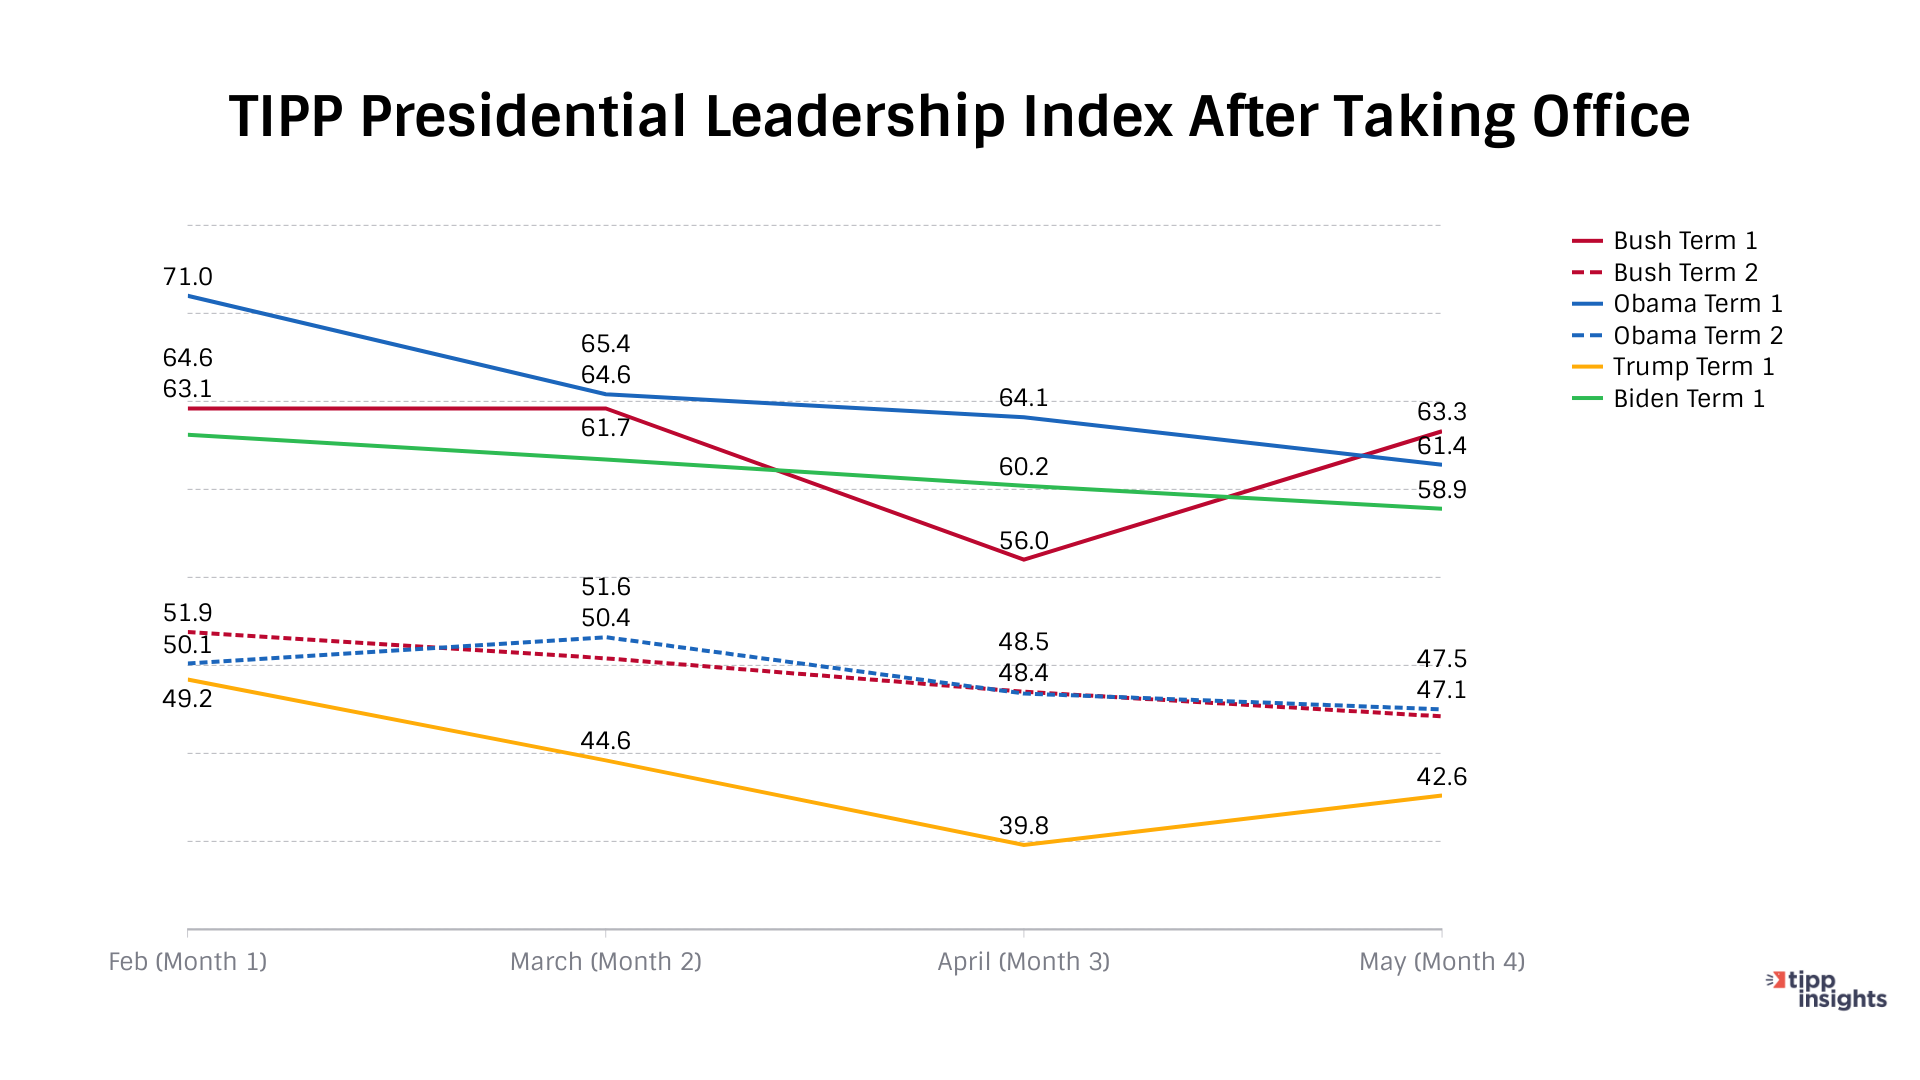 TIPP Presidential Leadership Index After taking office for Joe Biden in May 2021